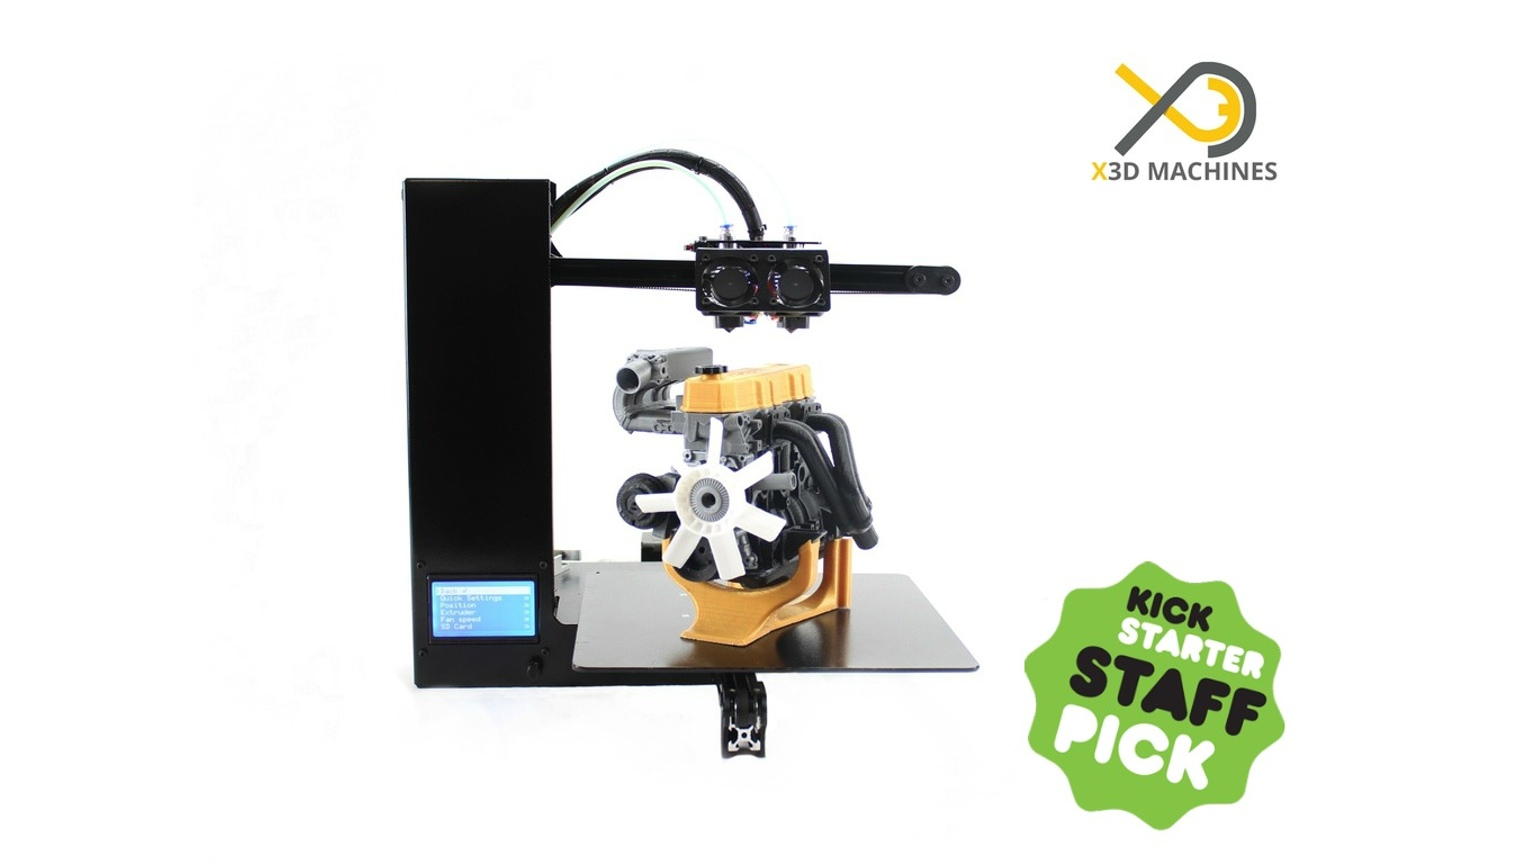 XMachine's Genesis 3D Printer Launch Seems to be Having Challenges